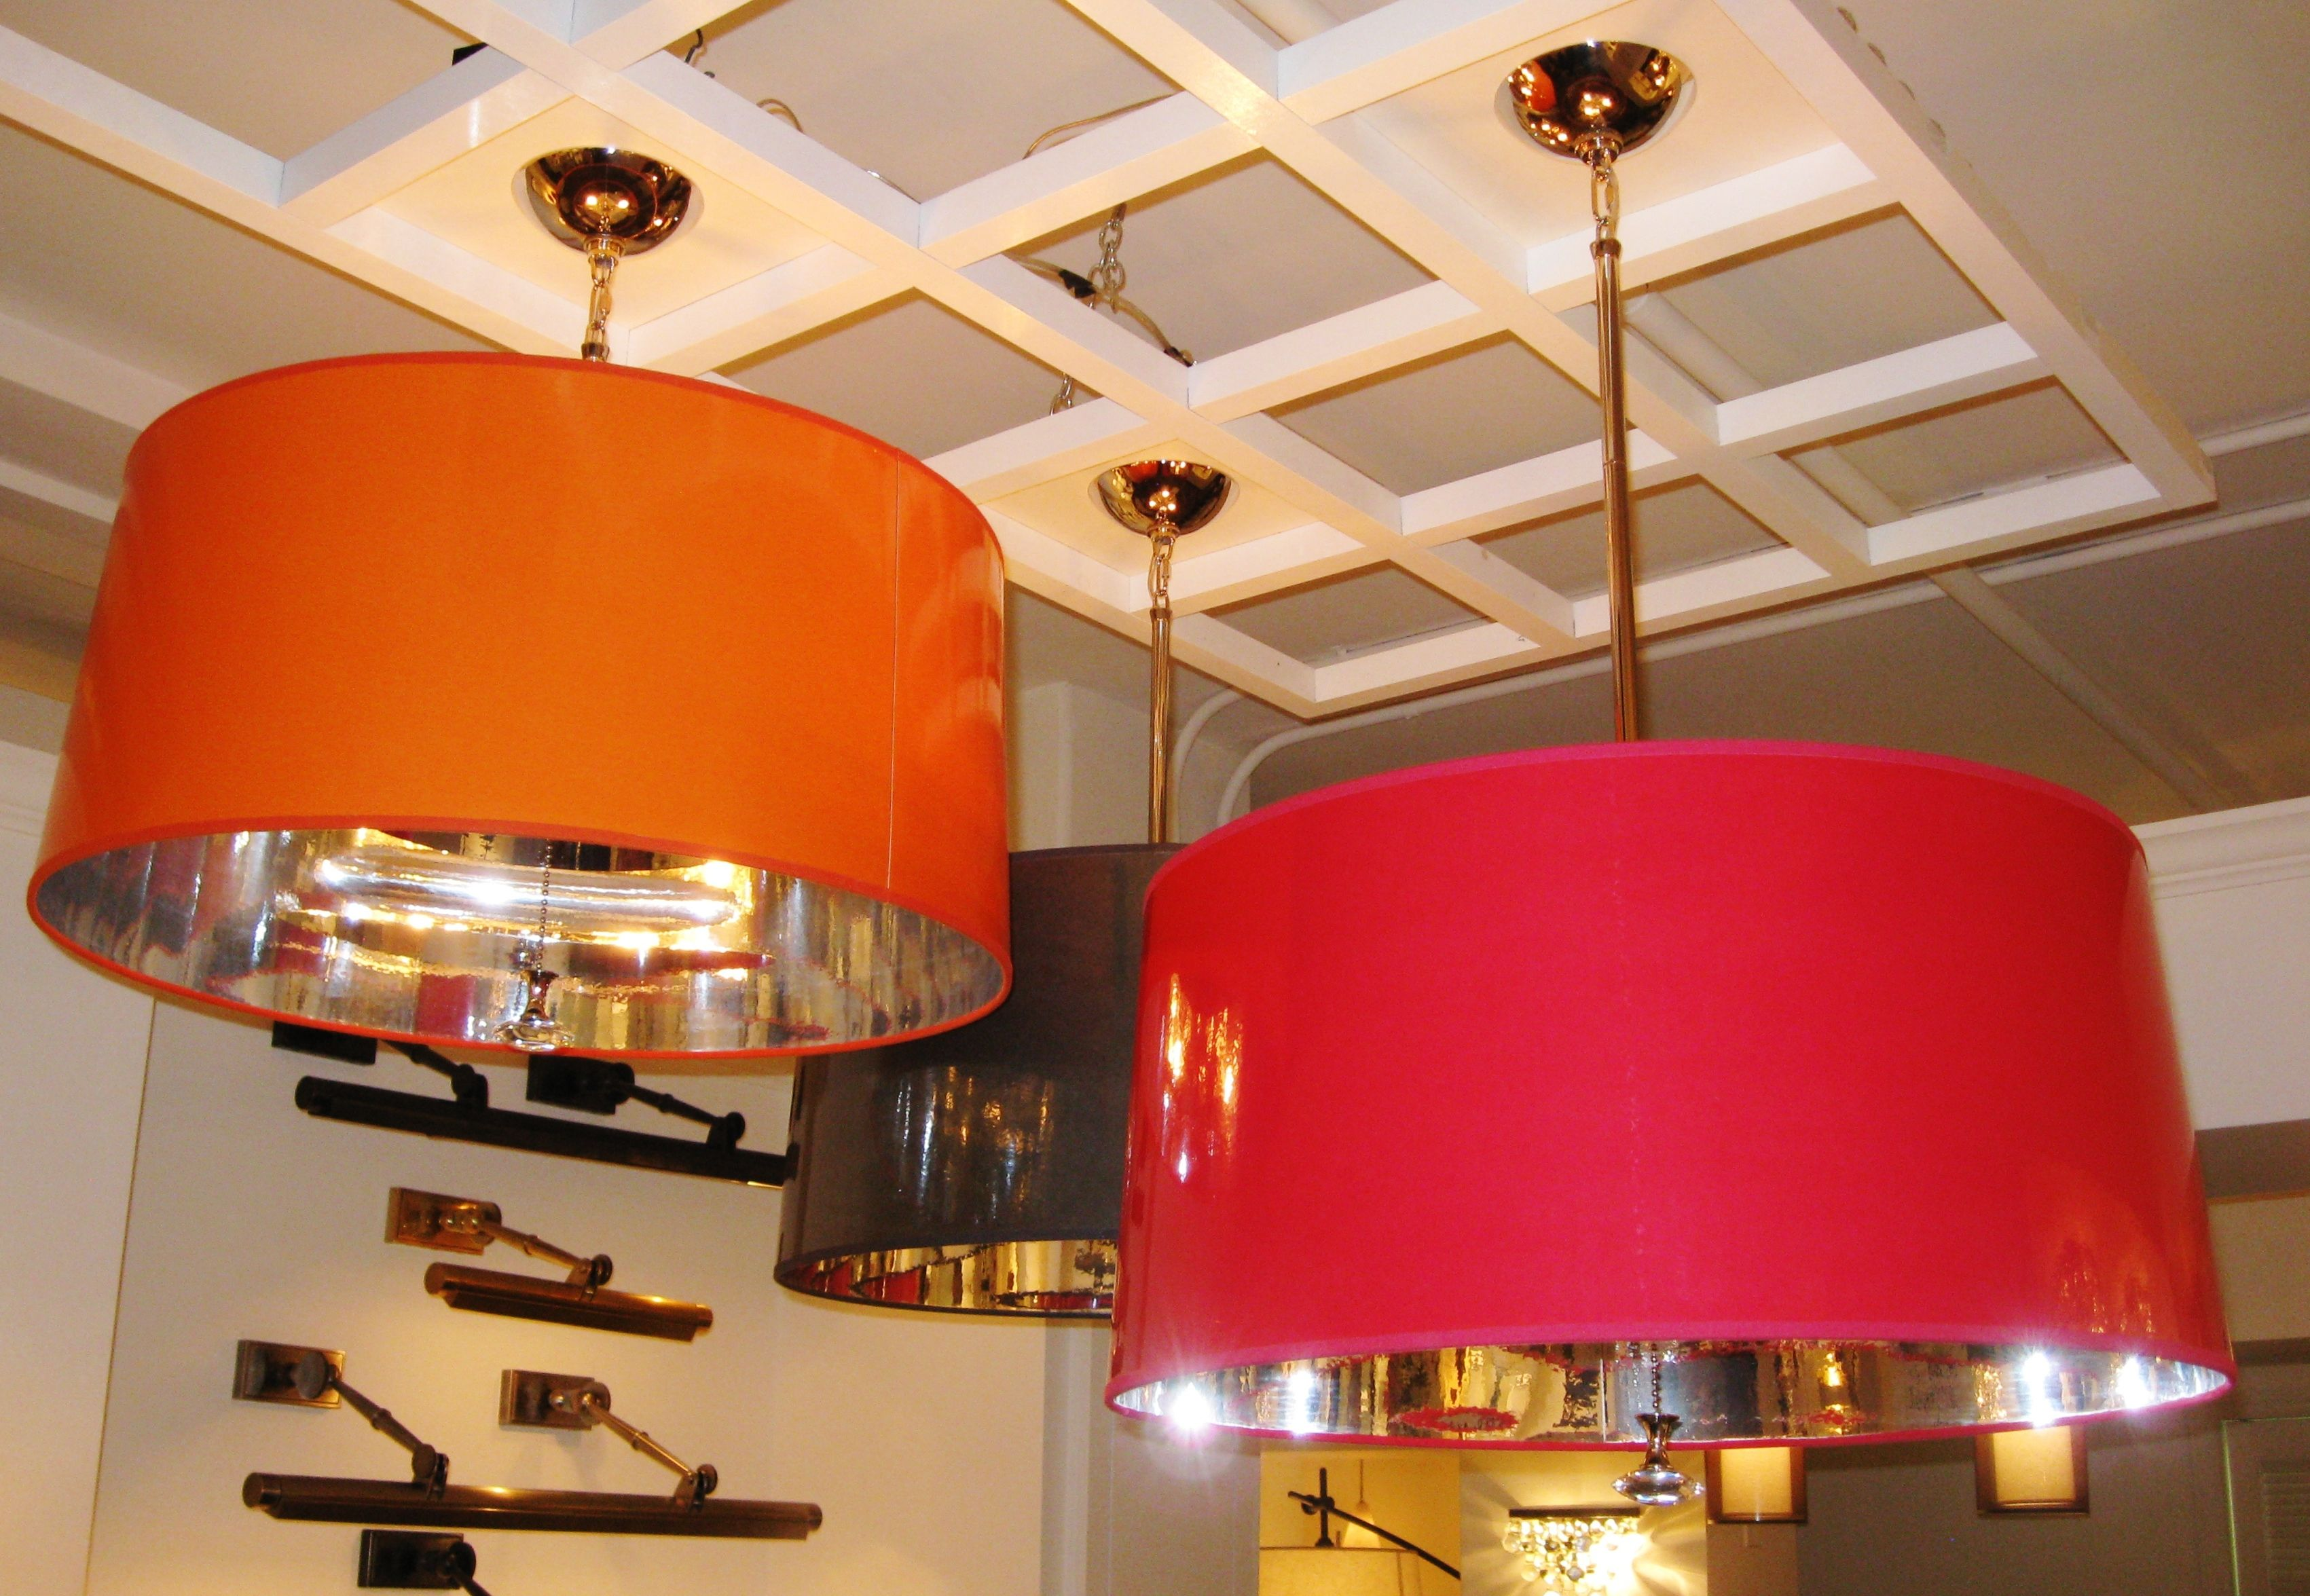 Robert abbey penelope pendant drum shade in orange fuschia black robert abbey penelope pendant drum shade in orange fuschia black navy and taupe red chandelierinterior arubaitofo Image collections